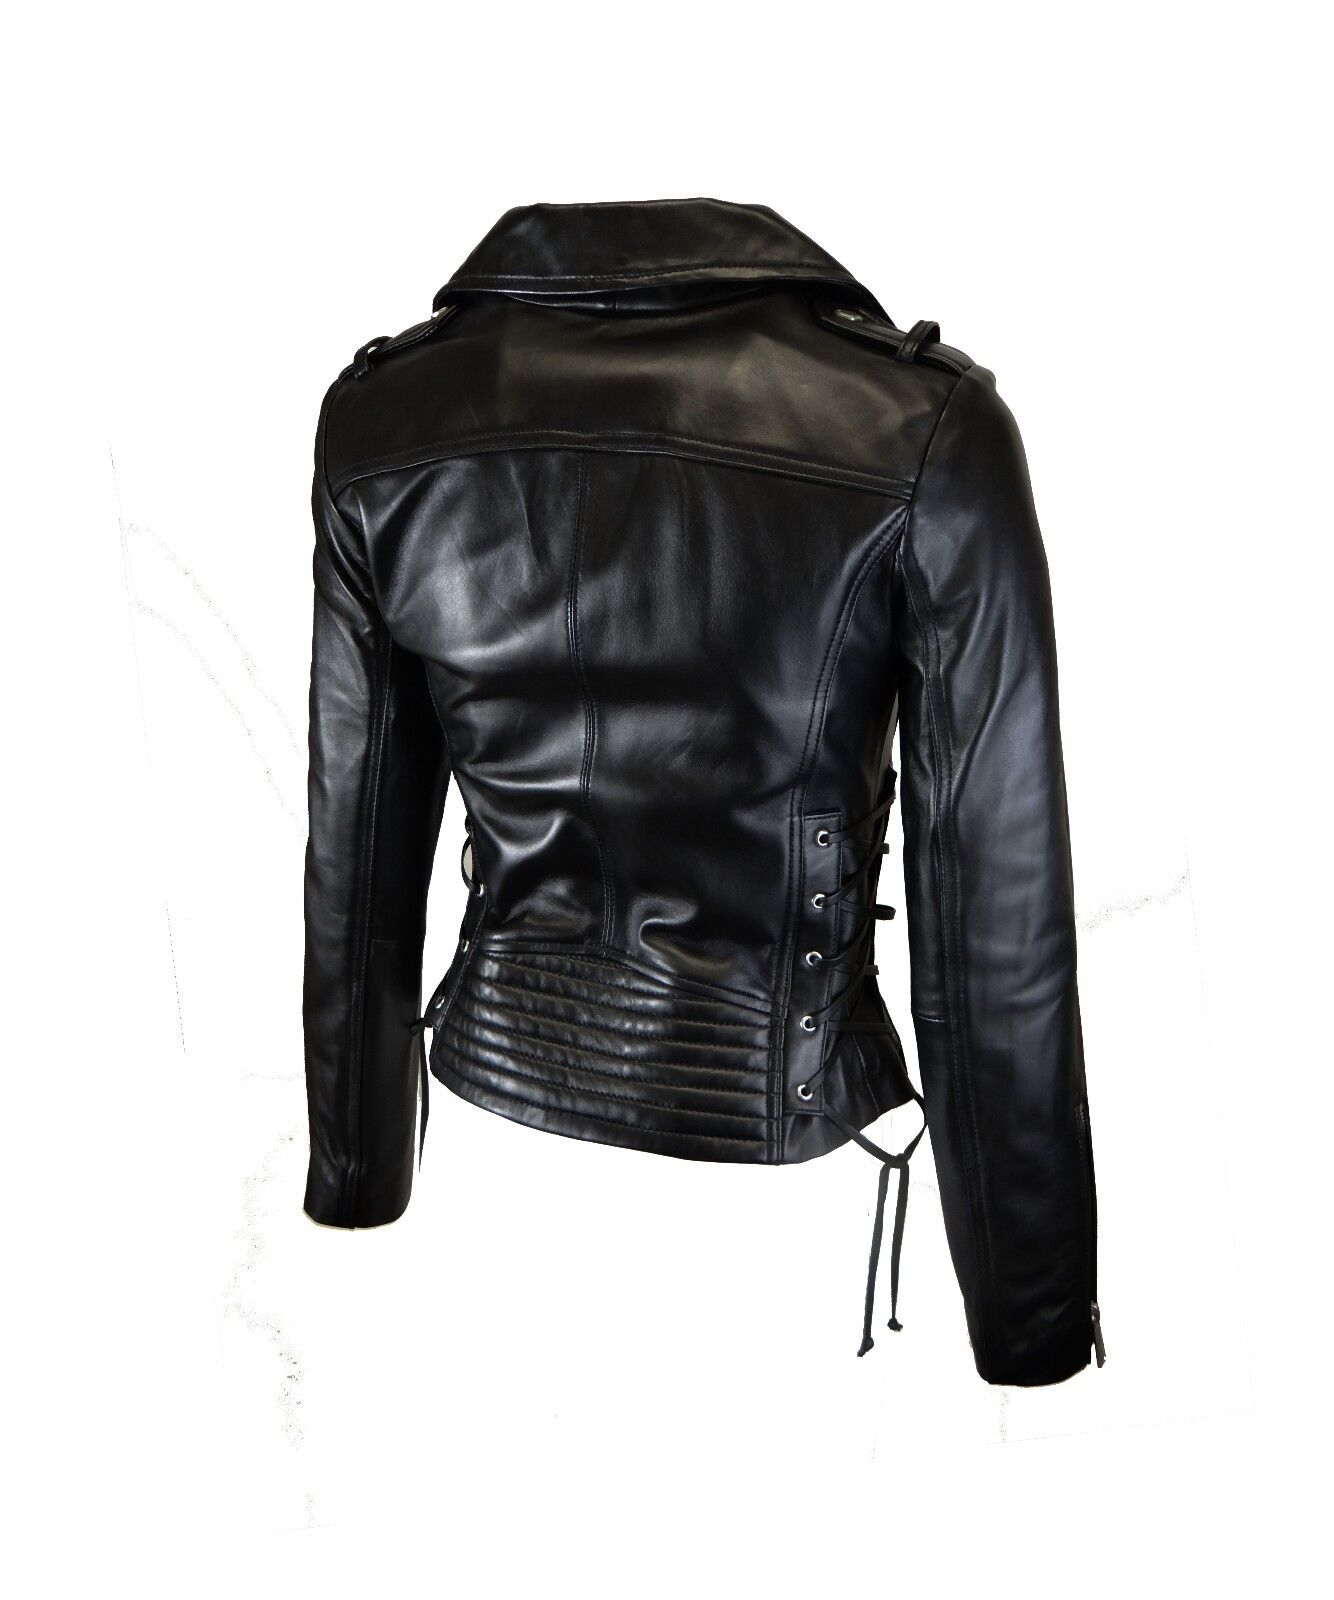 548ed12898be Details about BCBGeneration Women s Moto Leather Jacket with Lace-up Sides